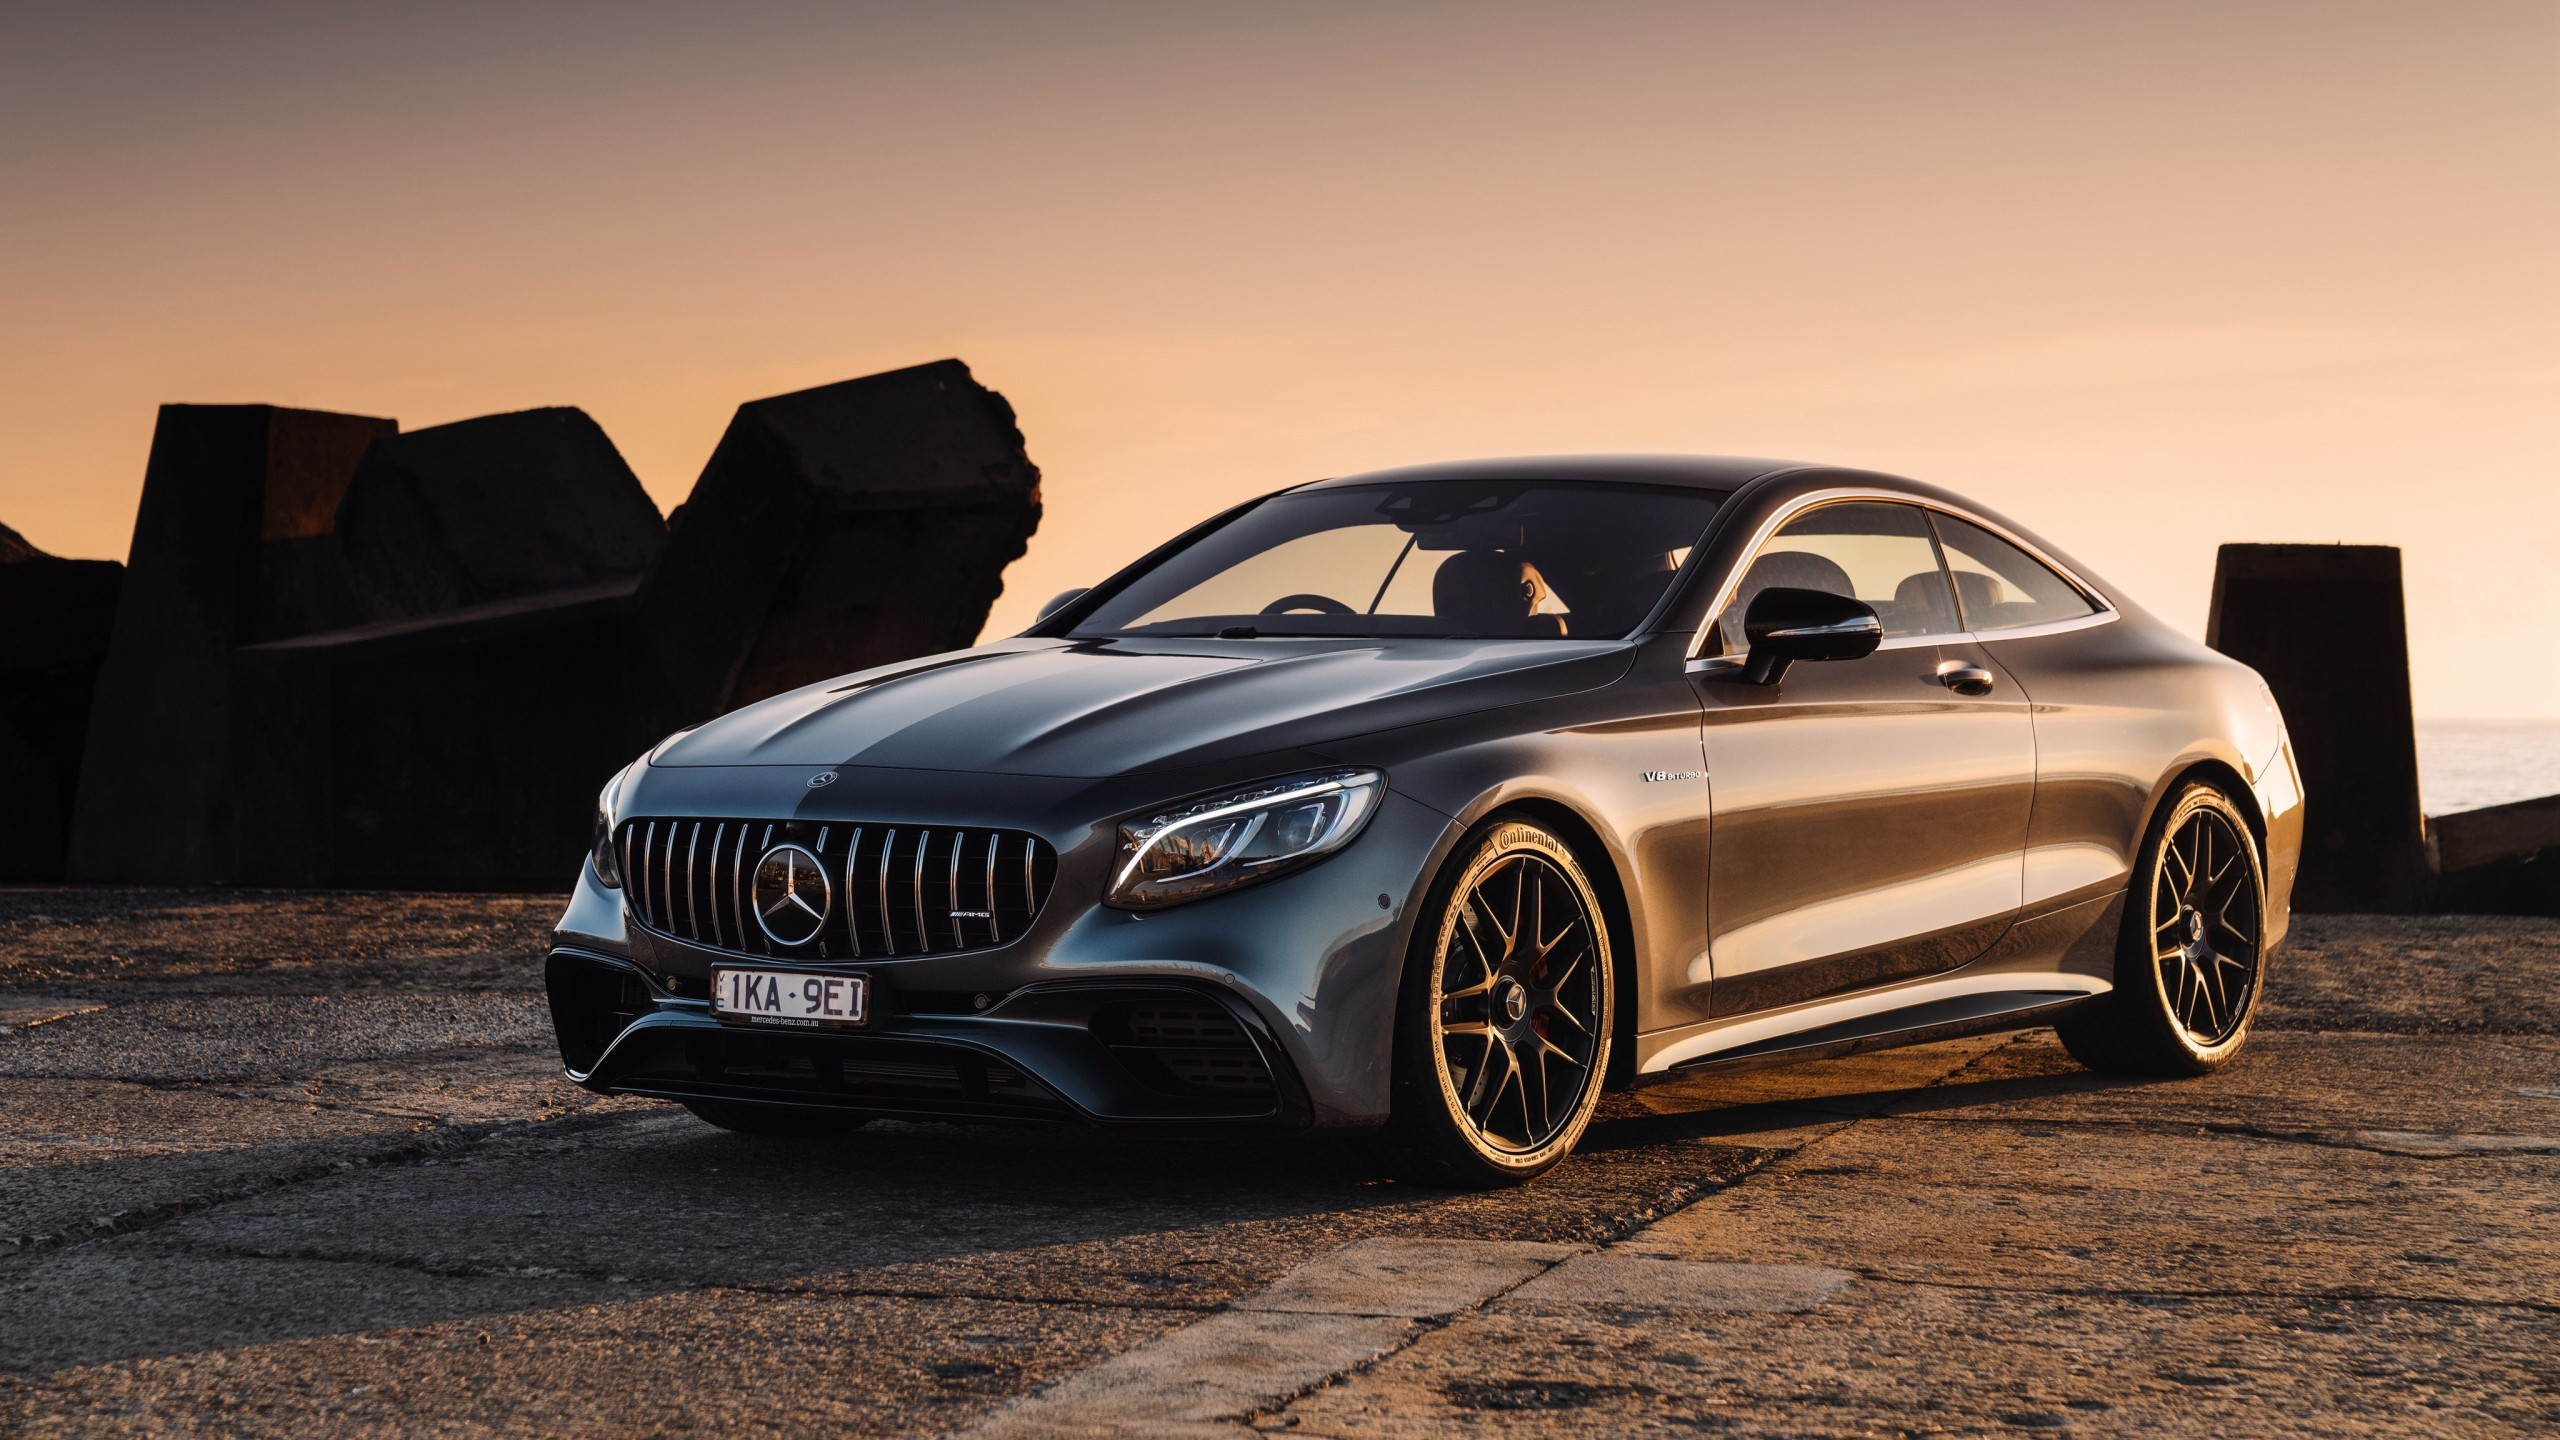 Mercedes Benz Cla >> Mercedes-AMG S 63 4MATIC Coupe 4K Wallpaper | HD Car ...